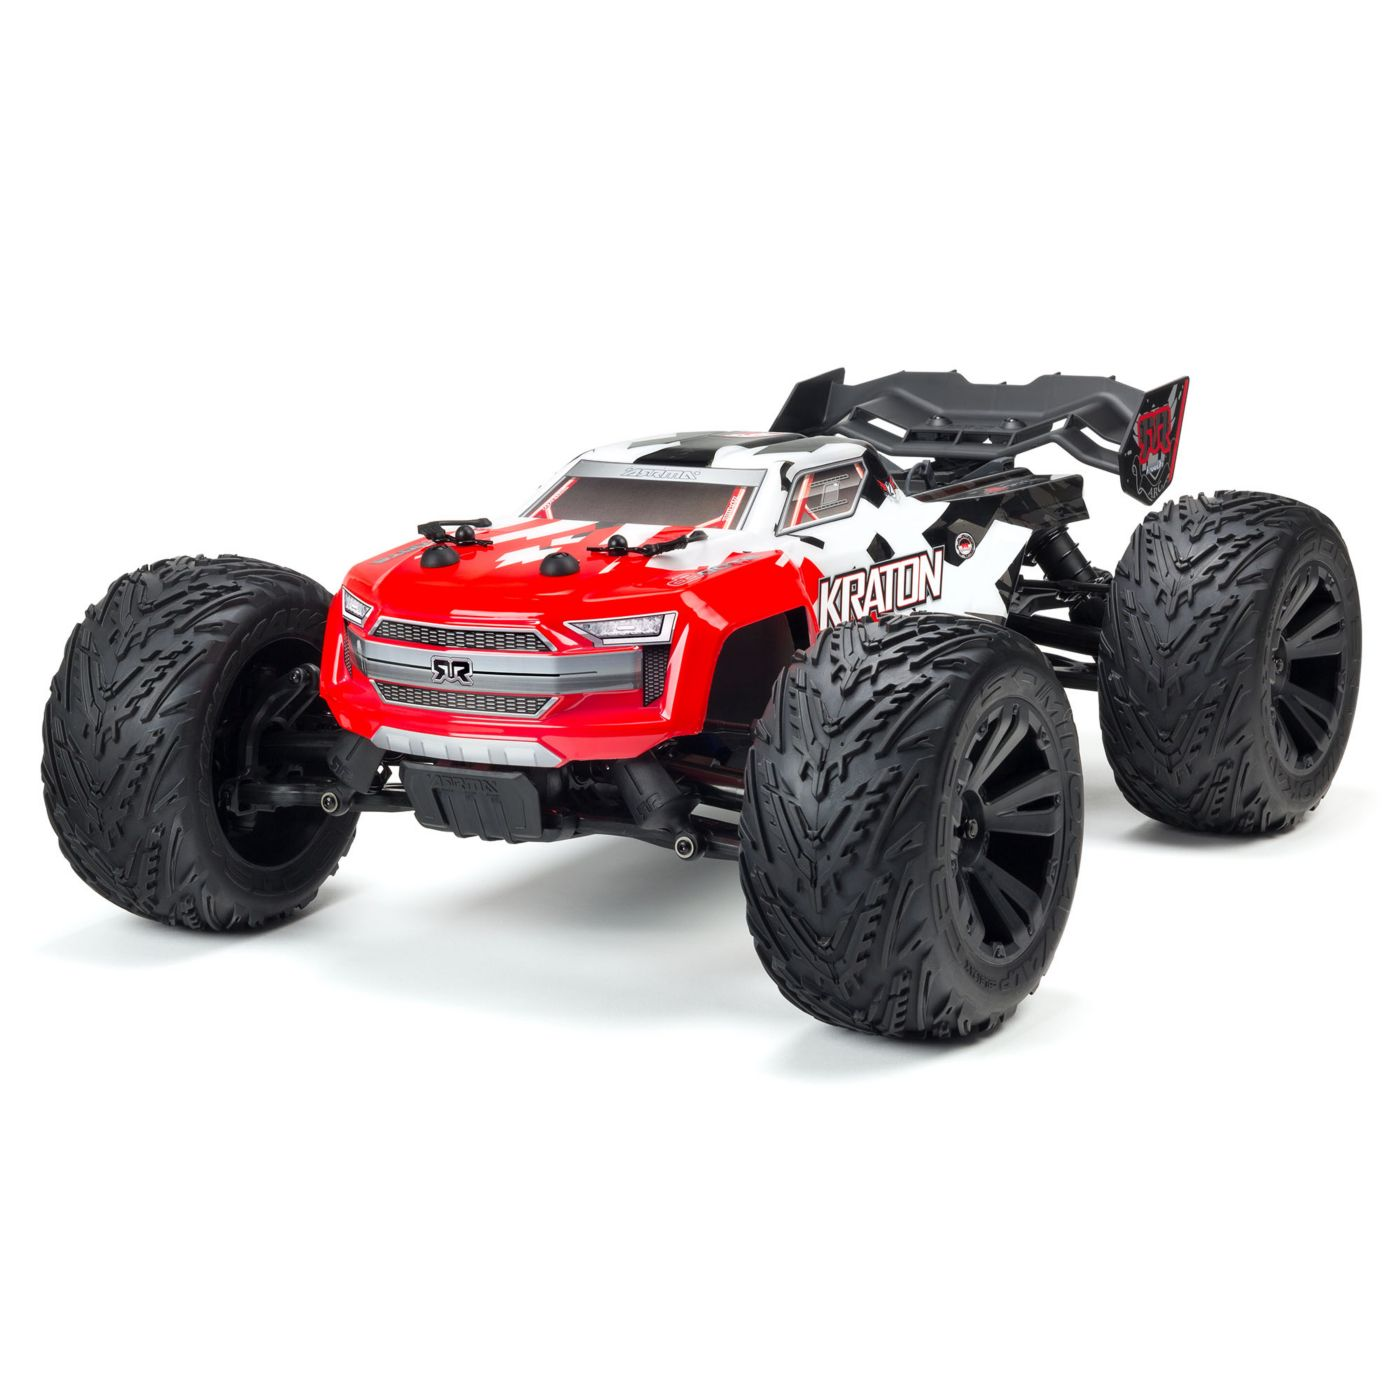 Smaller Sized But Super-powered: ARRMA's 1/10 Kraton 4S BLX Monster Truck